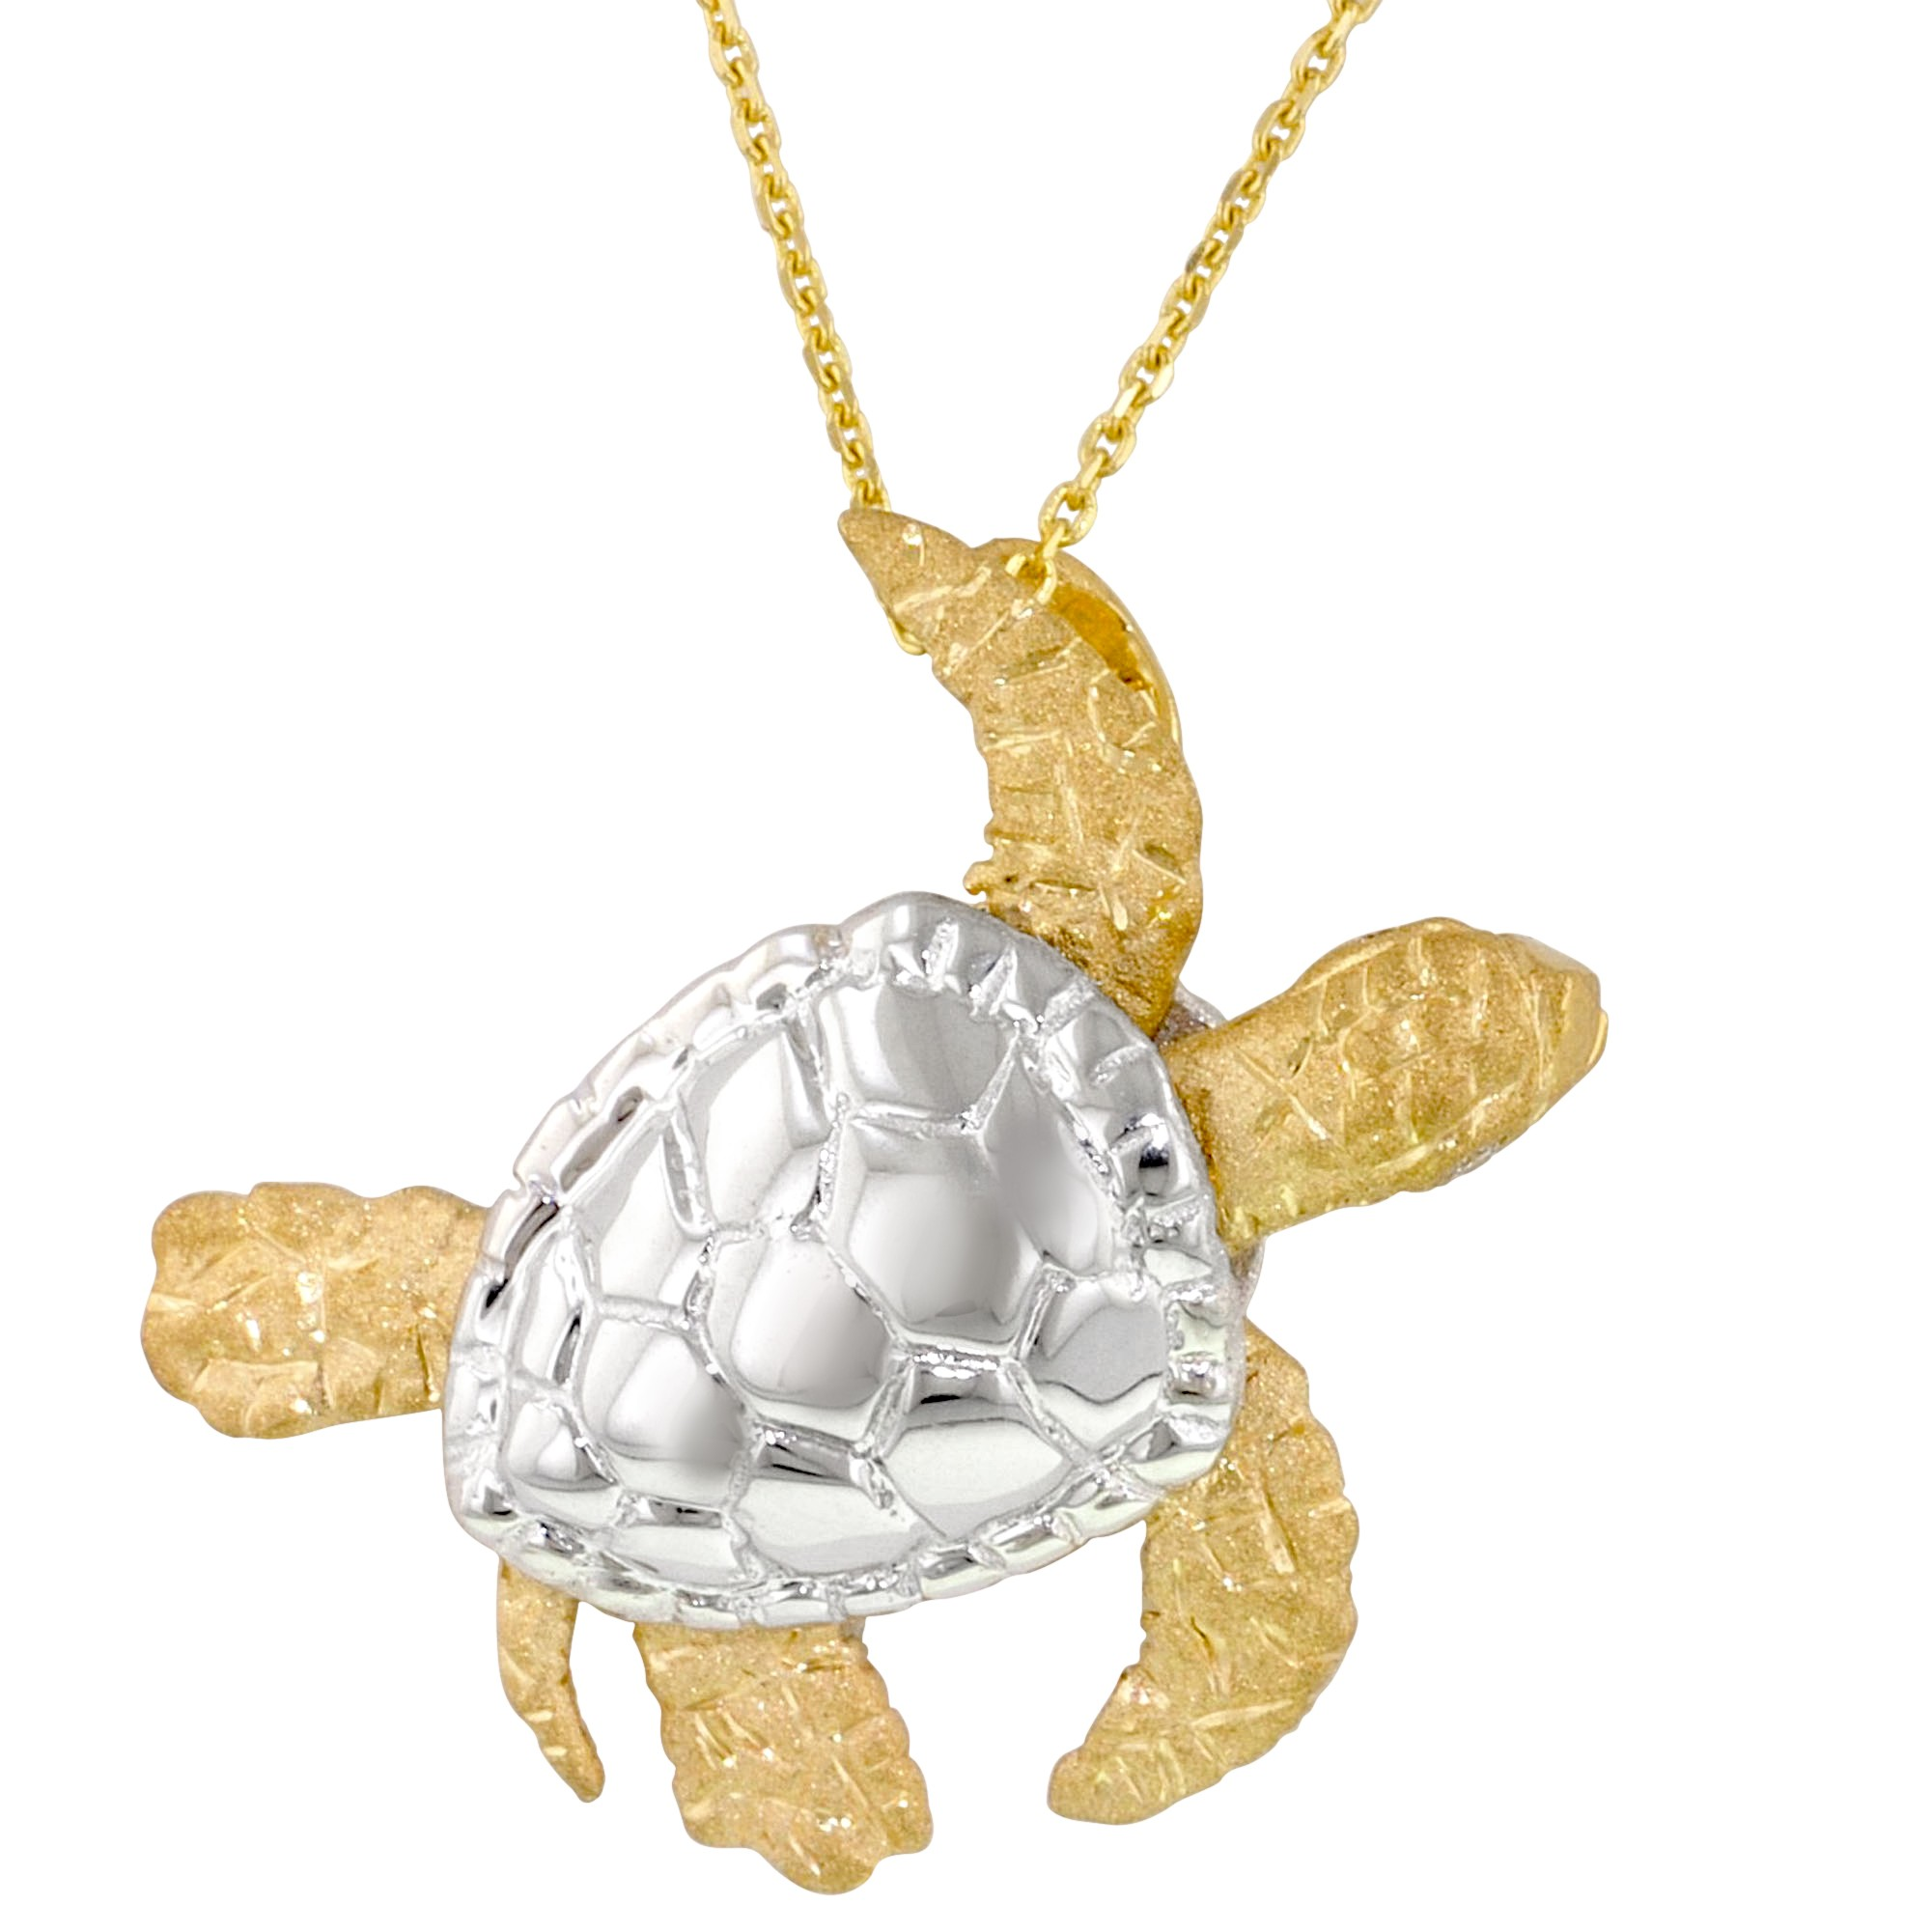 20mm sea turtle pendant wr chance 20mm sea turtle pendant aloadofball Choice Image